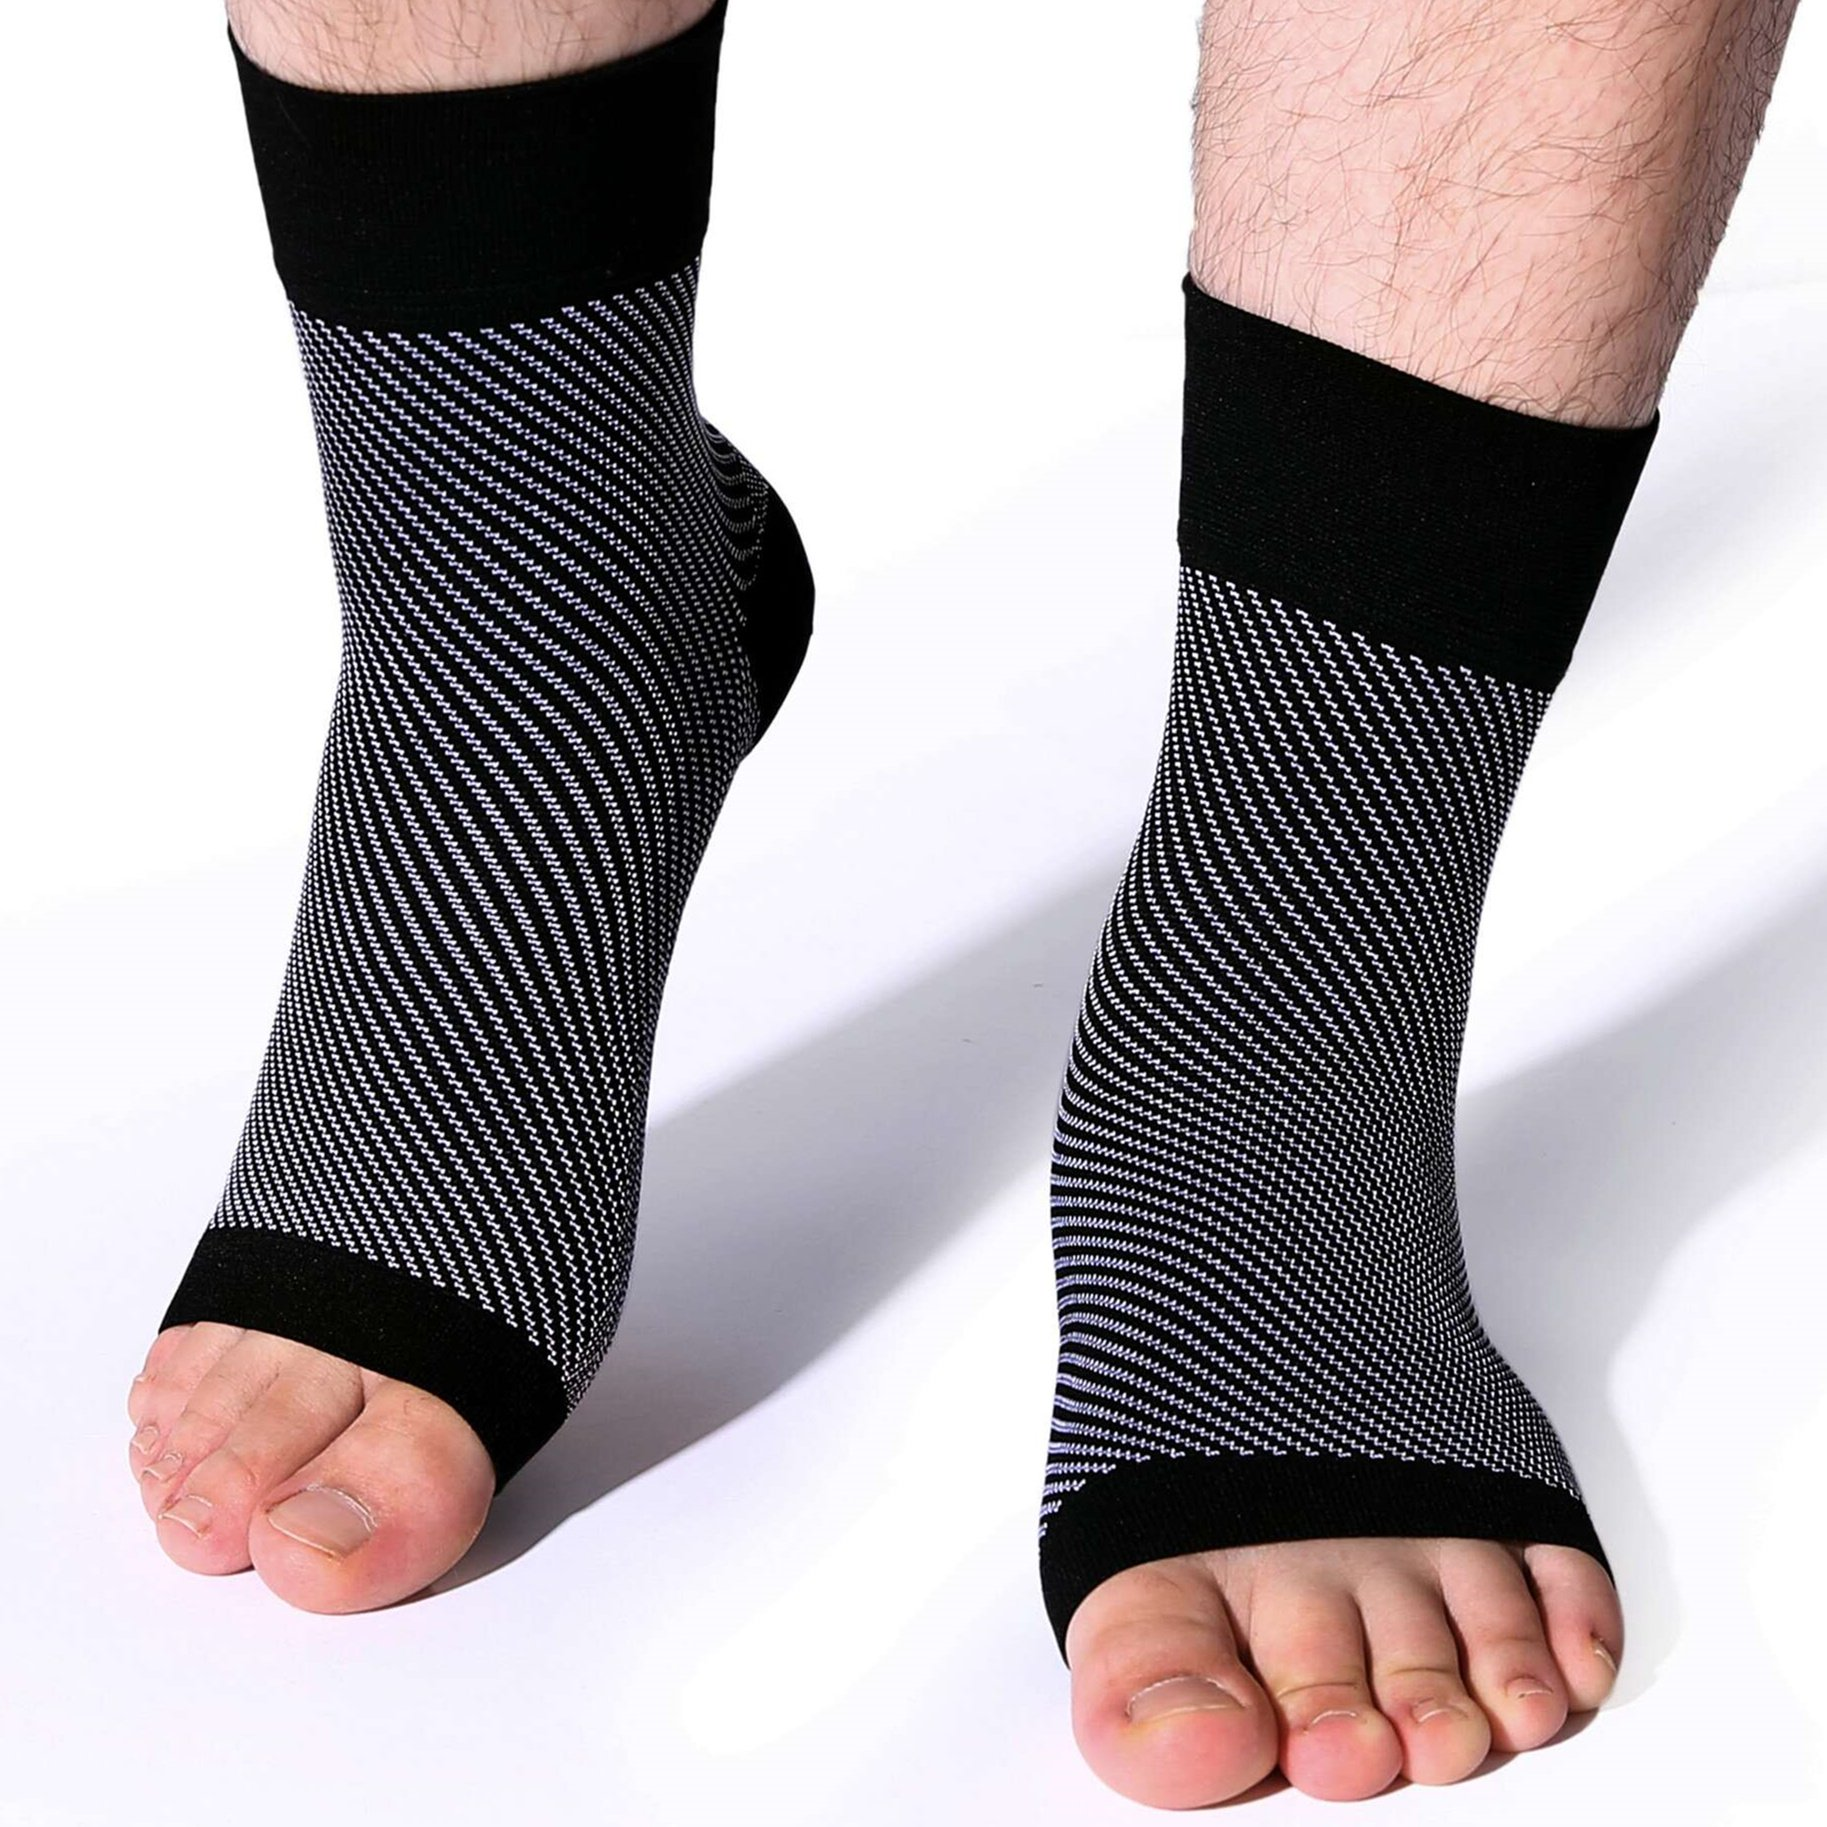 Plantar Fasciitis Socks - Ankle Brace Compression Support Sleeve for Comfortable Rapid Relieves Achilles Tendonitis Boosts Recovery from Joint Pain, Sprain and Edema